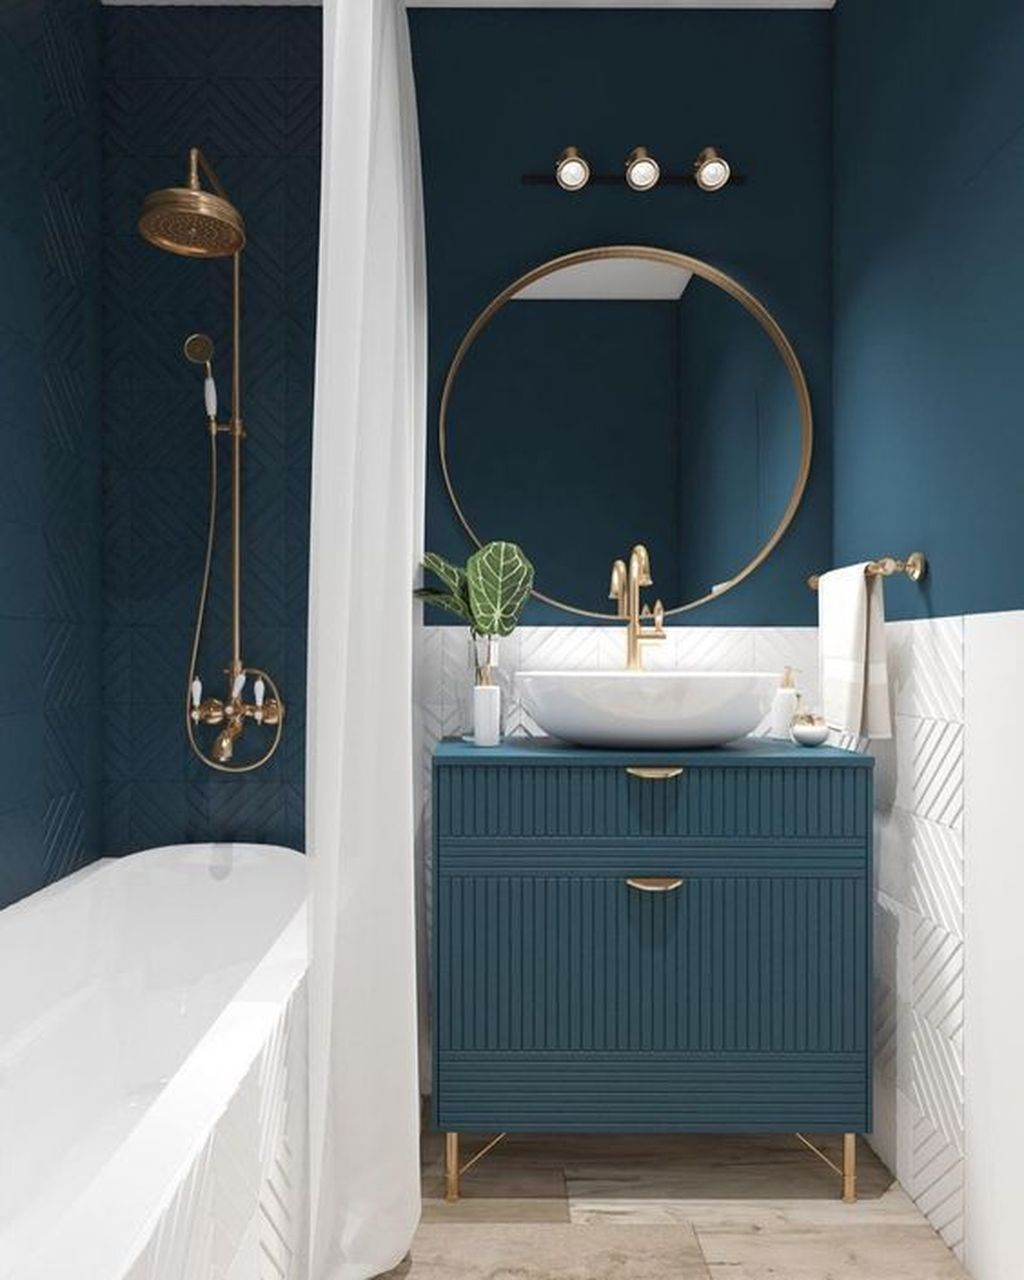 30+ Beautiful Classic Bathroom Design Ideas